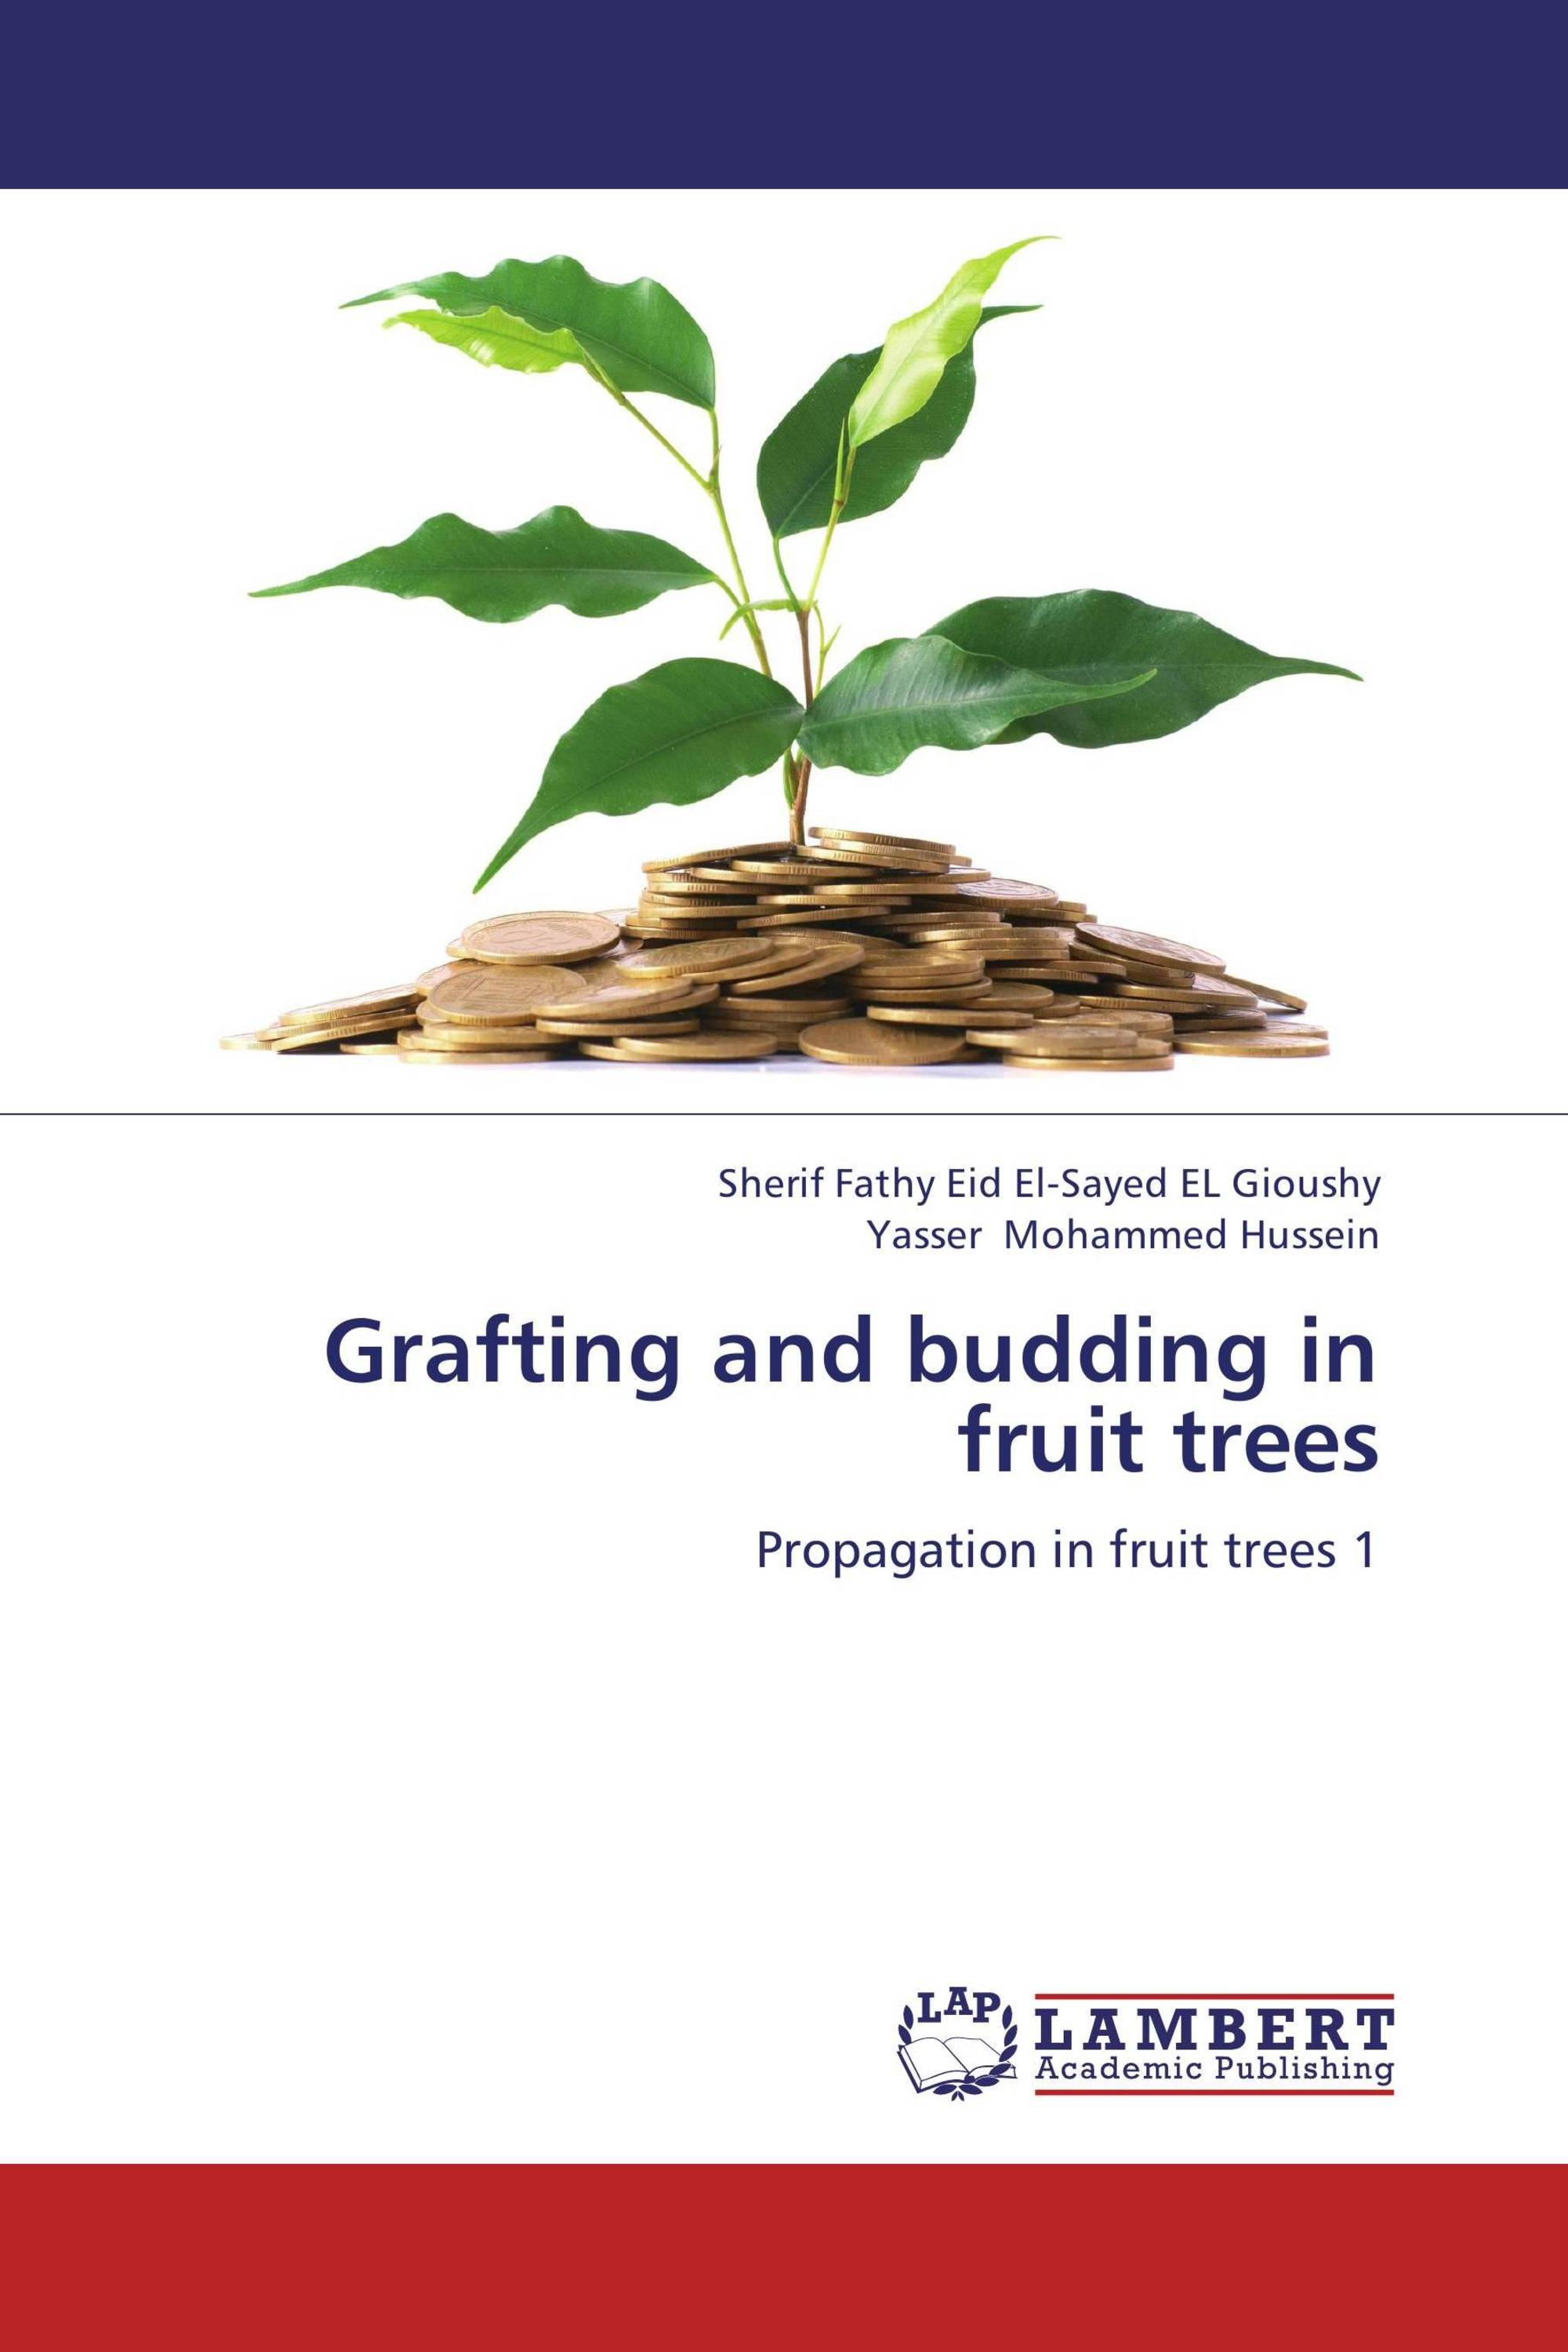 Grafting and budding in fruit trees